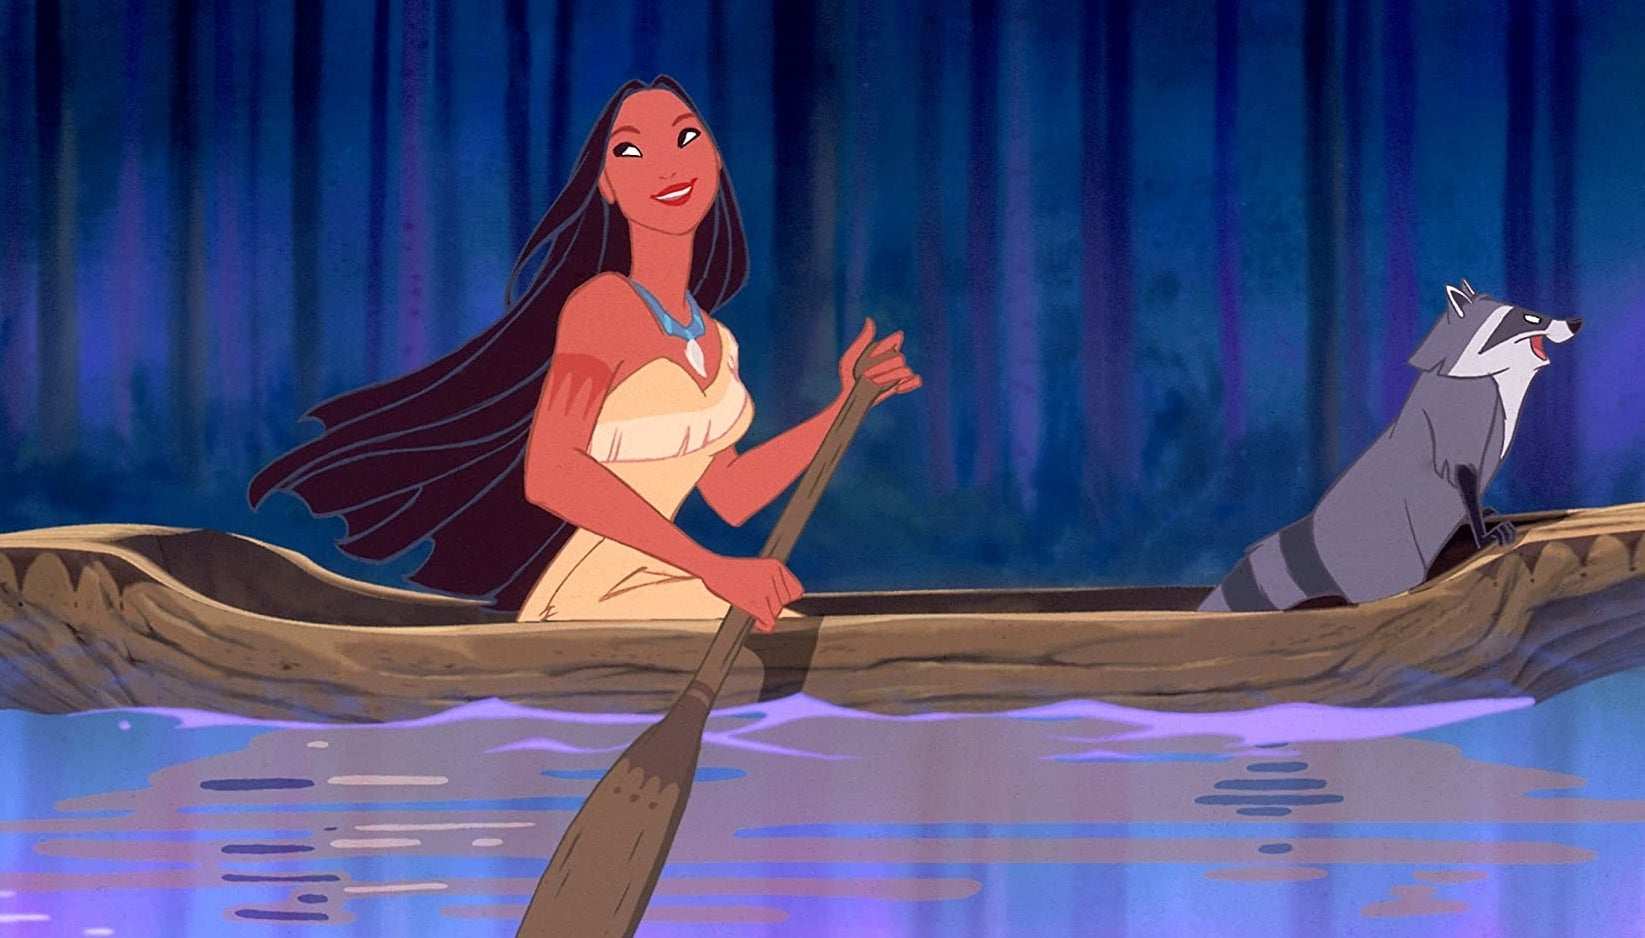 Pocahontas in her dress, rowing a canoe